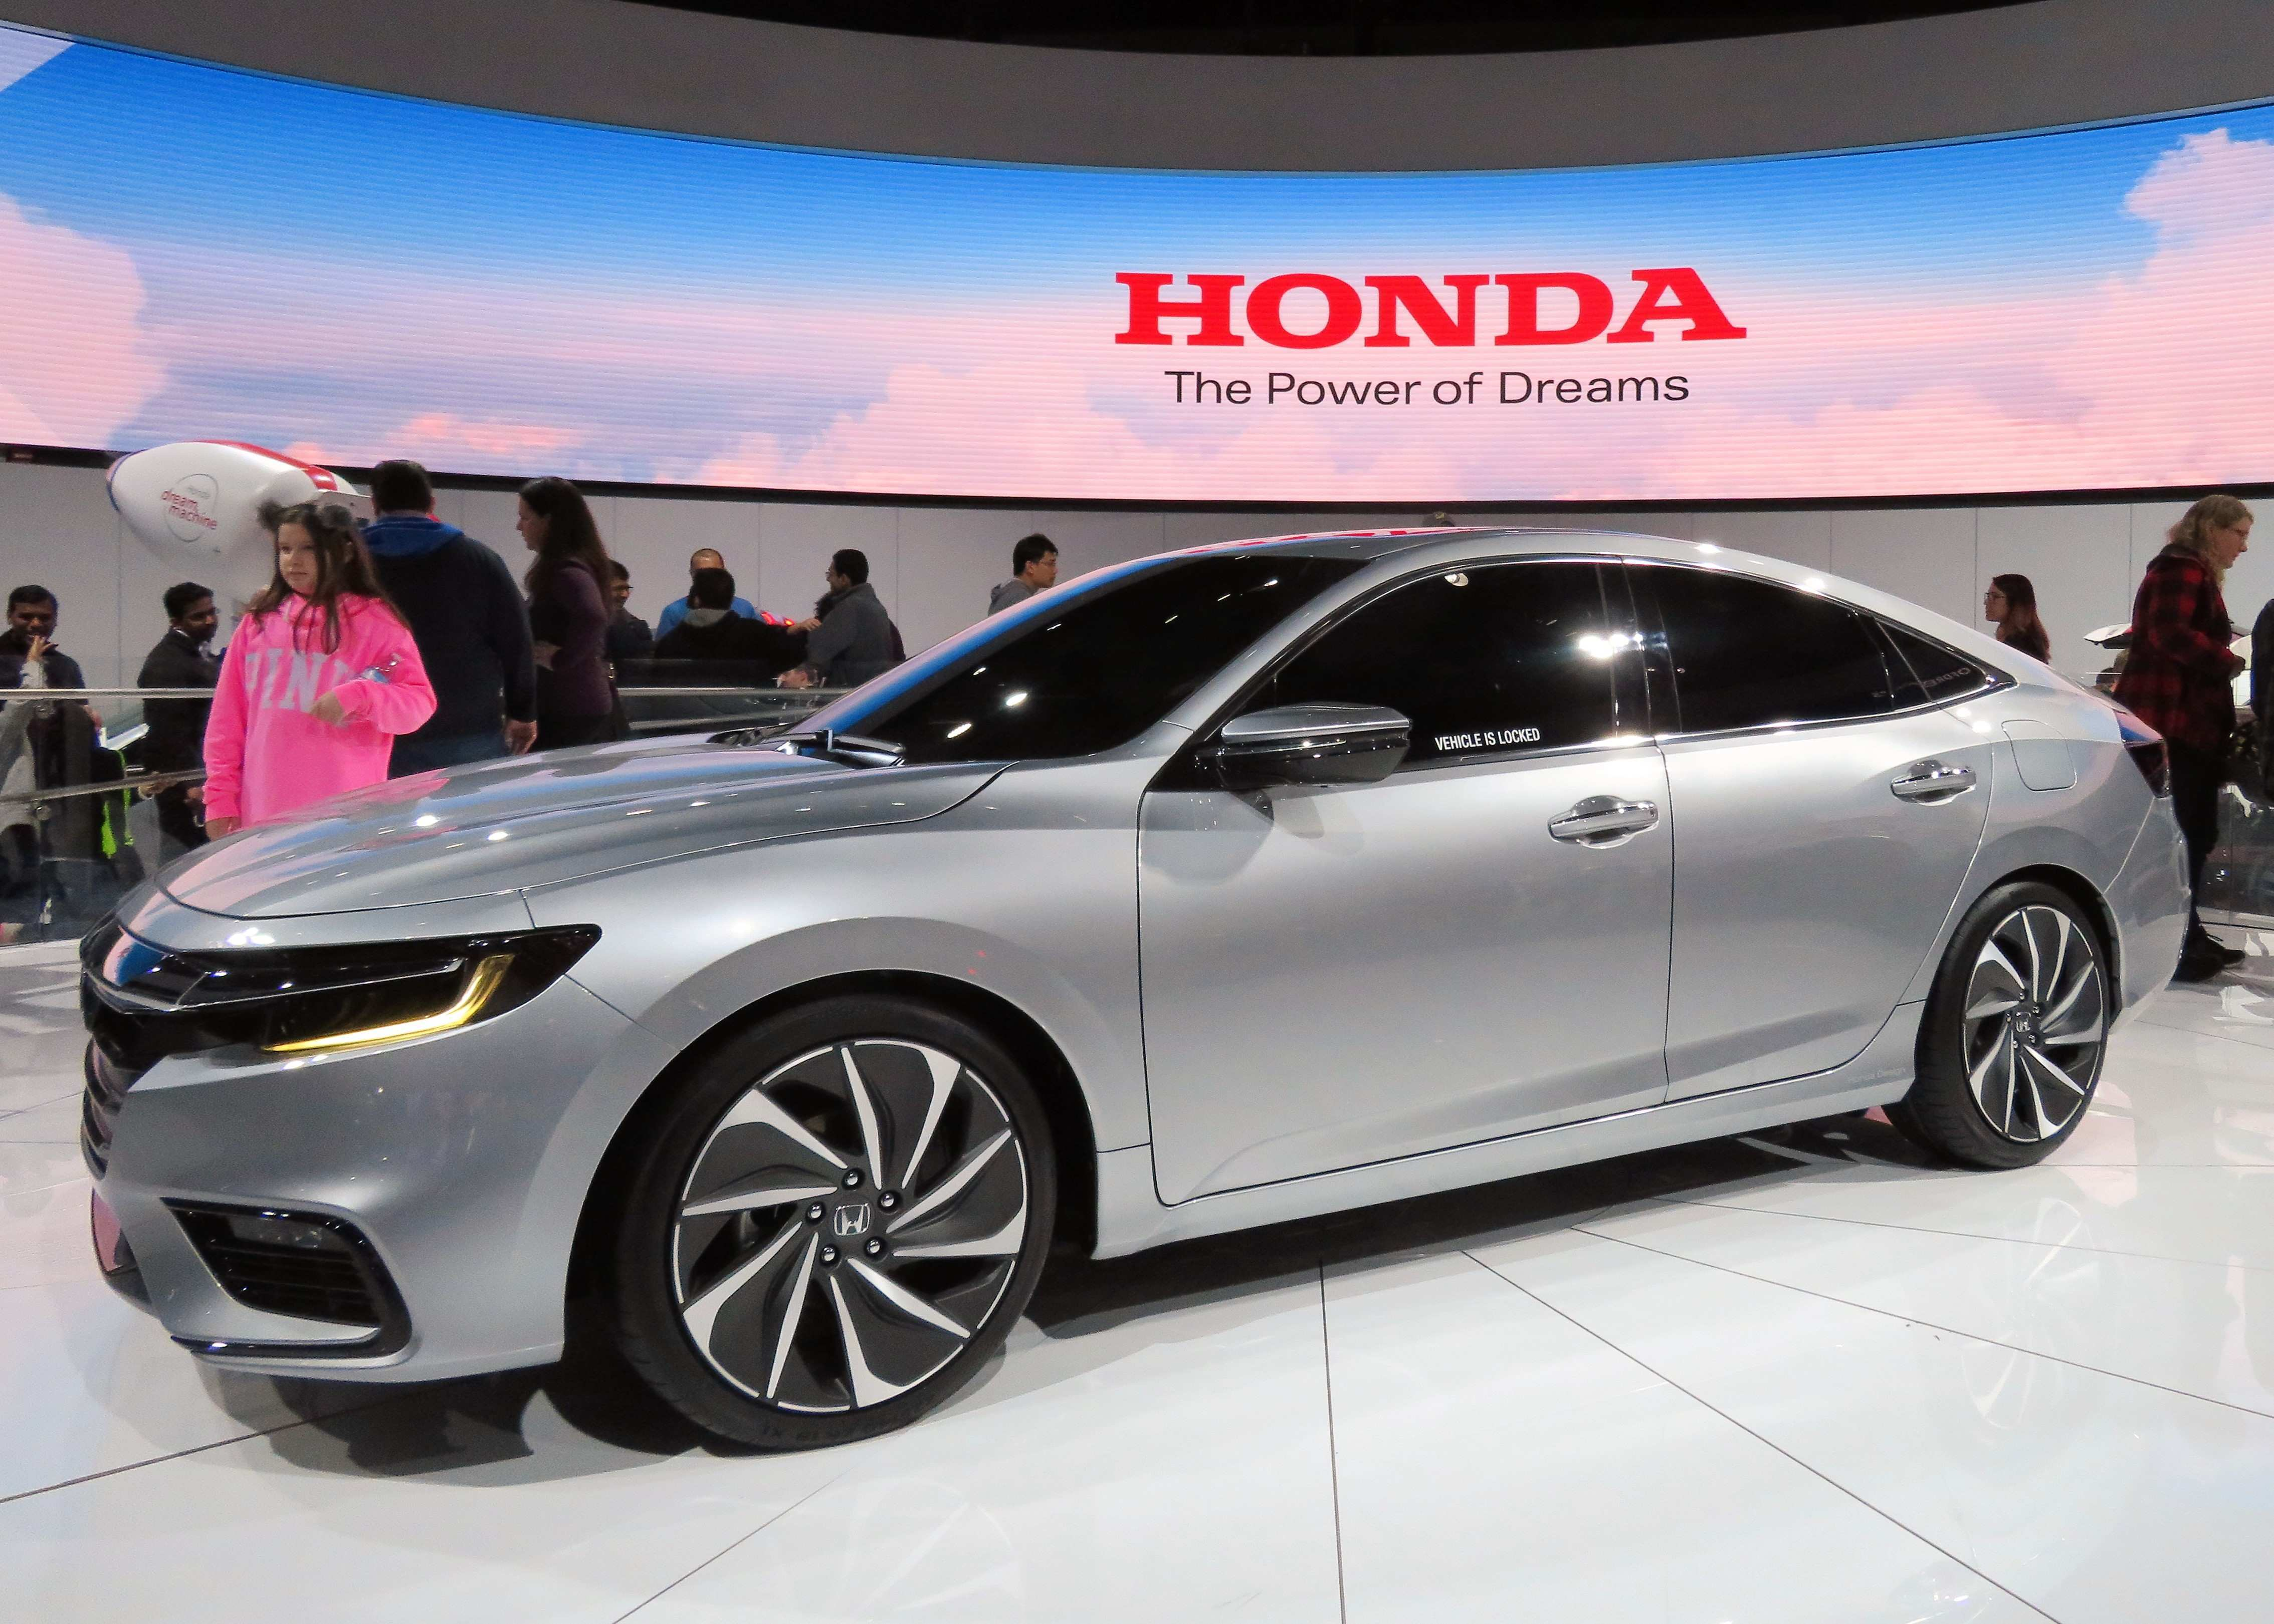 44 Concept of Honda To Make English Official Language By 2020 Redesign by Honda To Make English Official Language By 2020